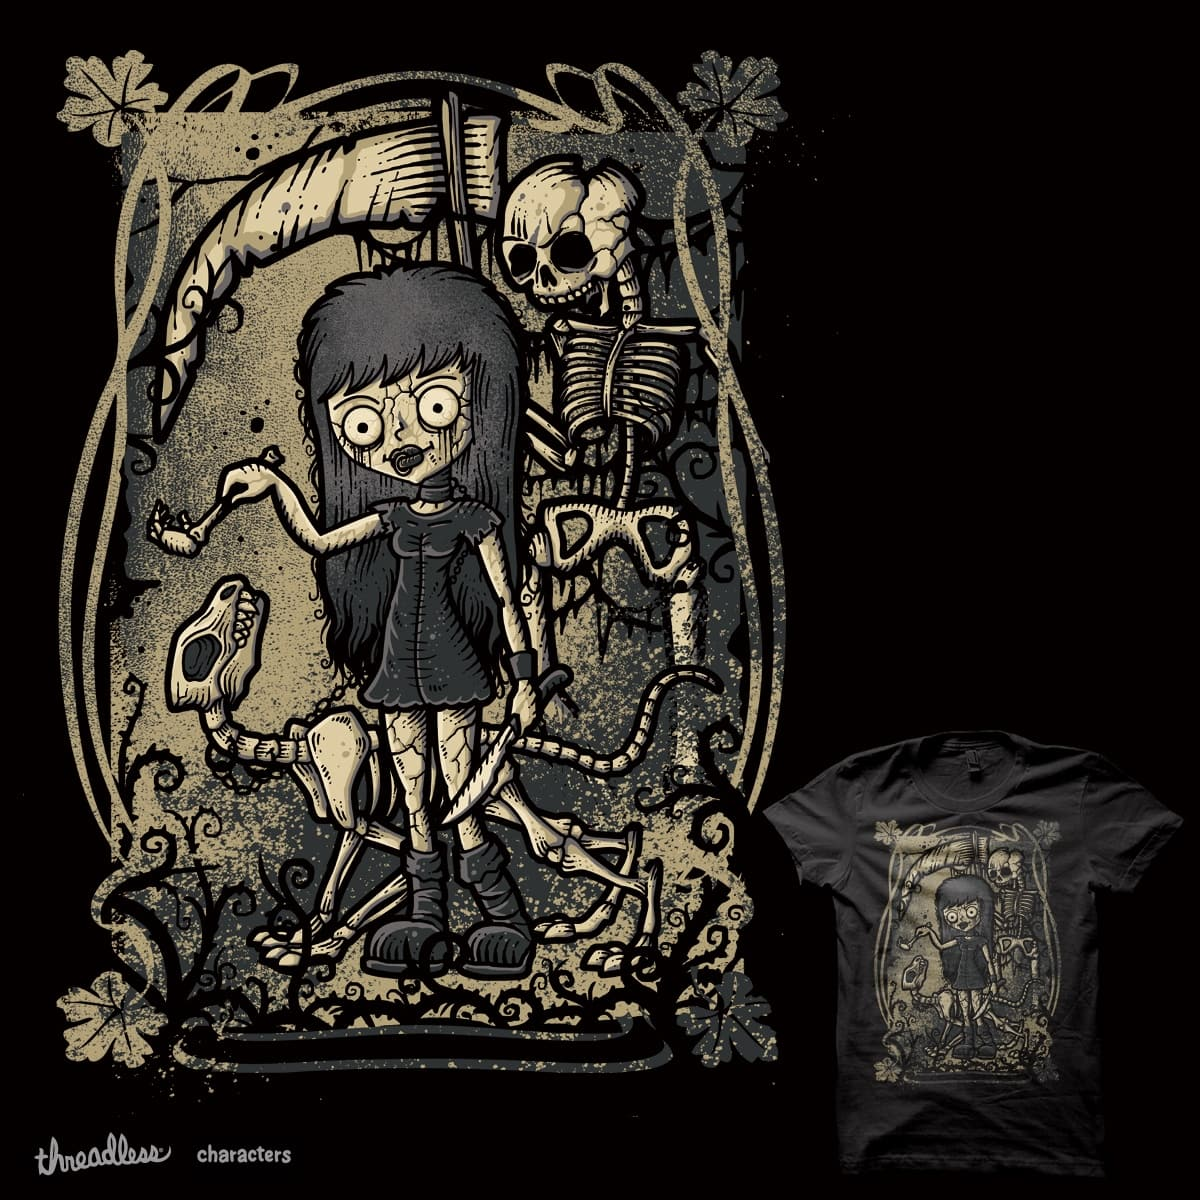 In The Darkness by Letter_Q on Threadless